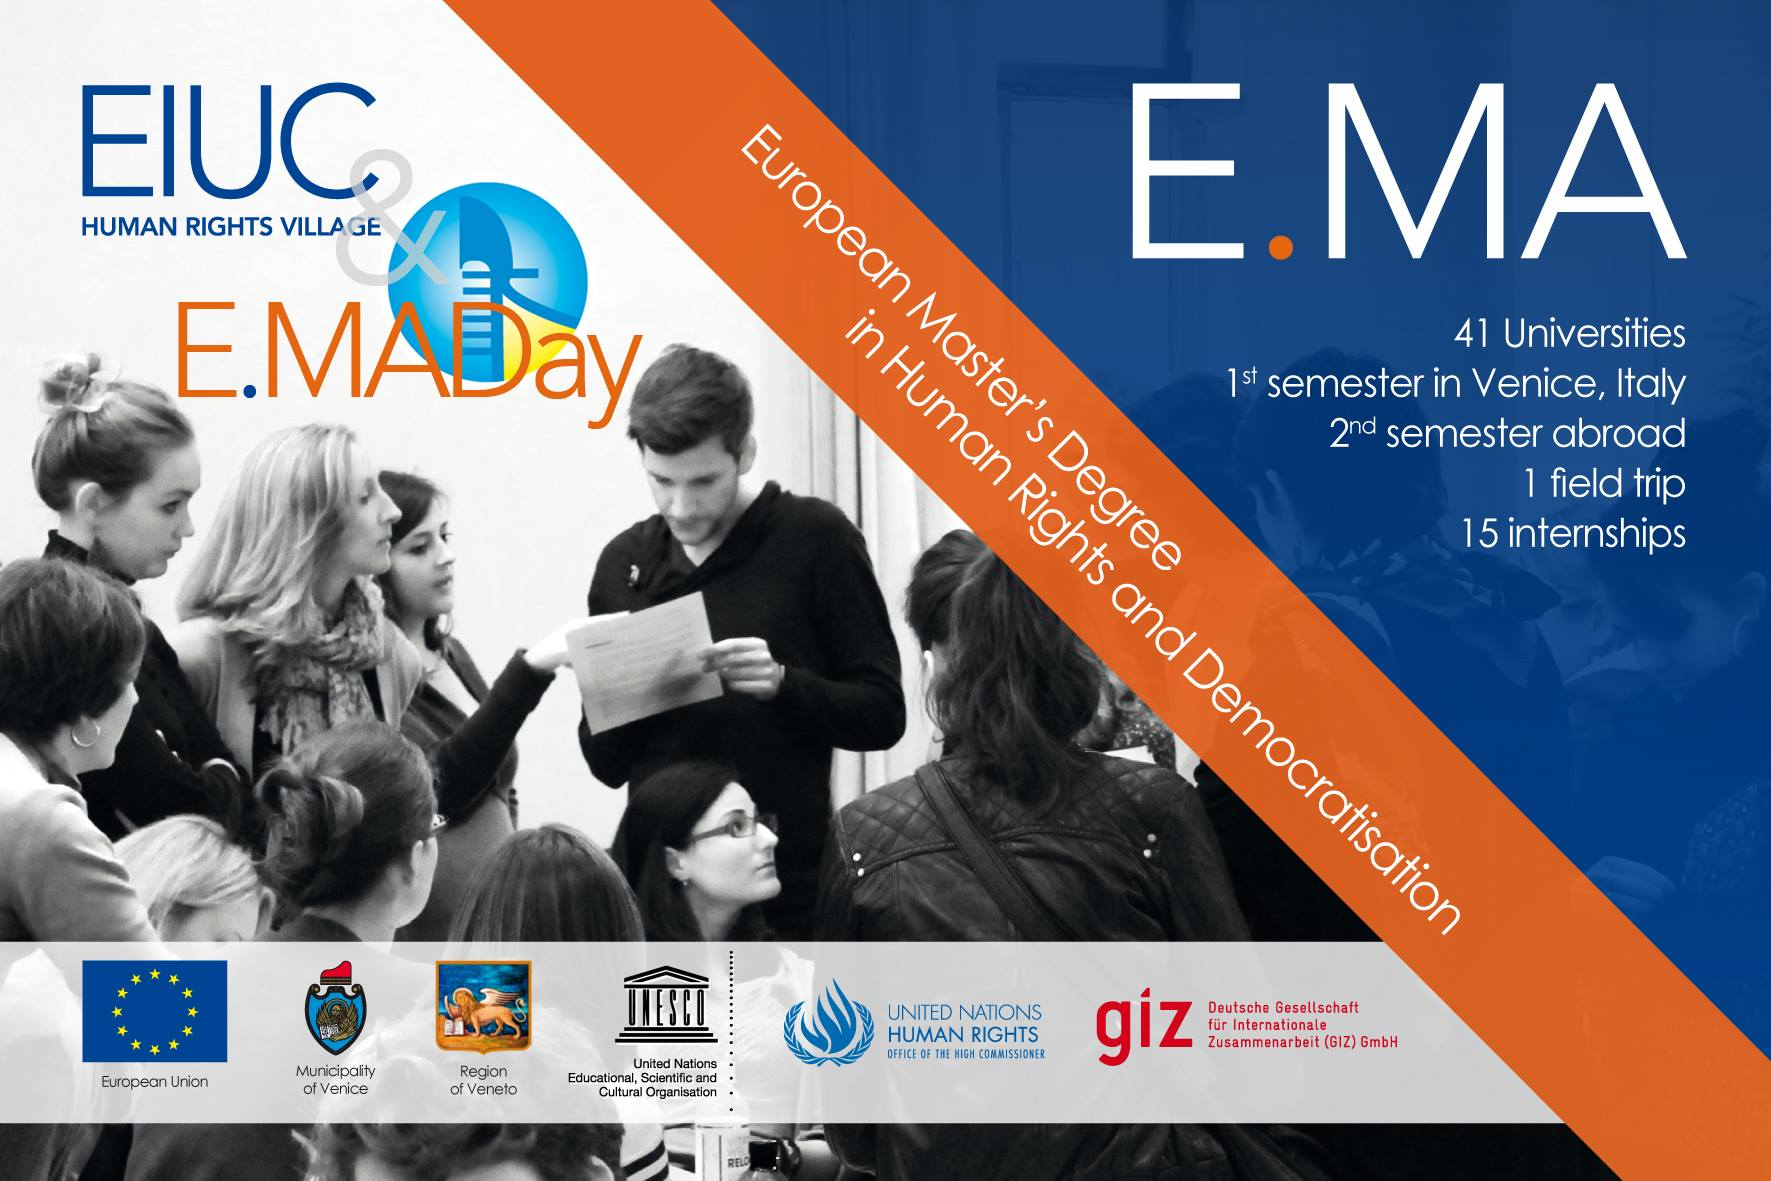 Poster of the European Master in Human Rights and Democratisation (E.MA)